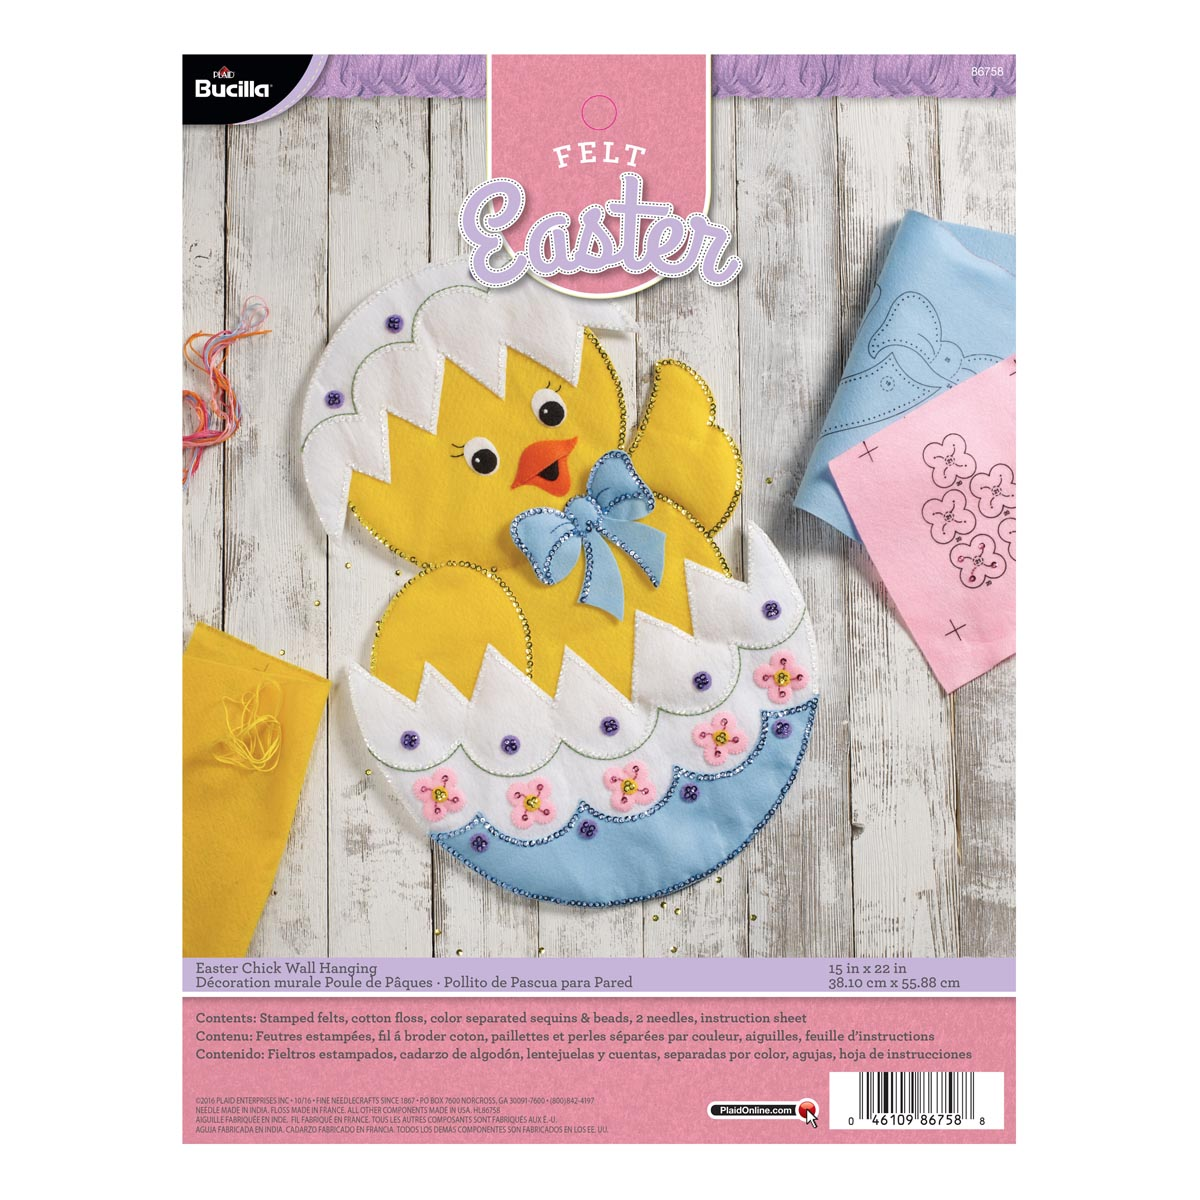 Bucilla ® Seasonal - Felt - Home Decor - Door/Wall Hanging Kits - Easter Chick